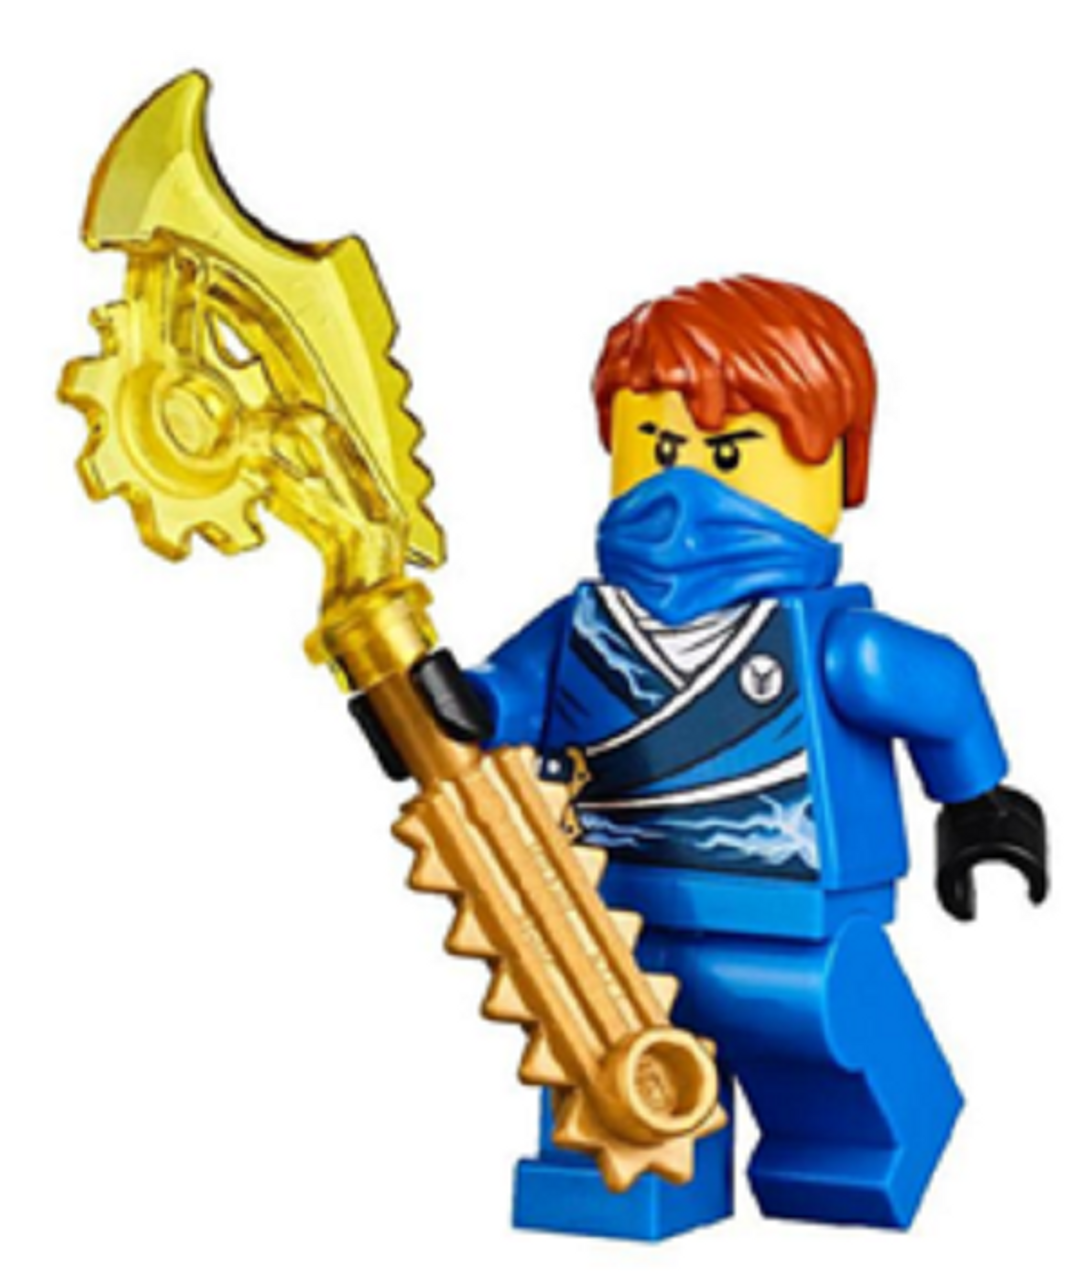 Lego Ninjago Techno Jay With Techno Blade Rebooted The Brick People